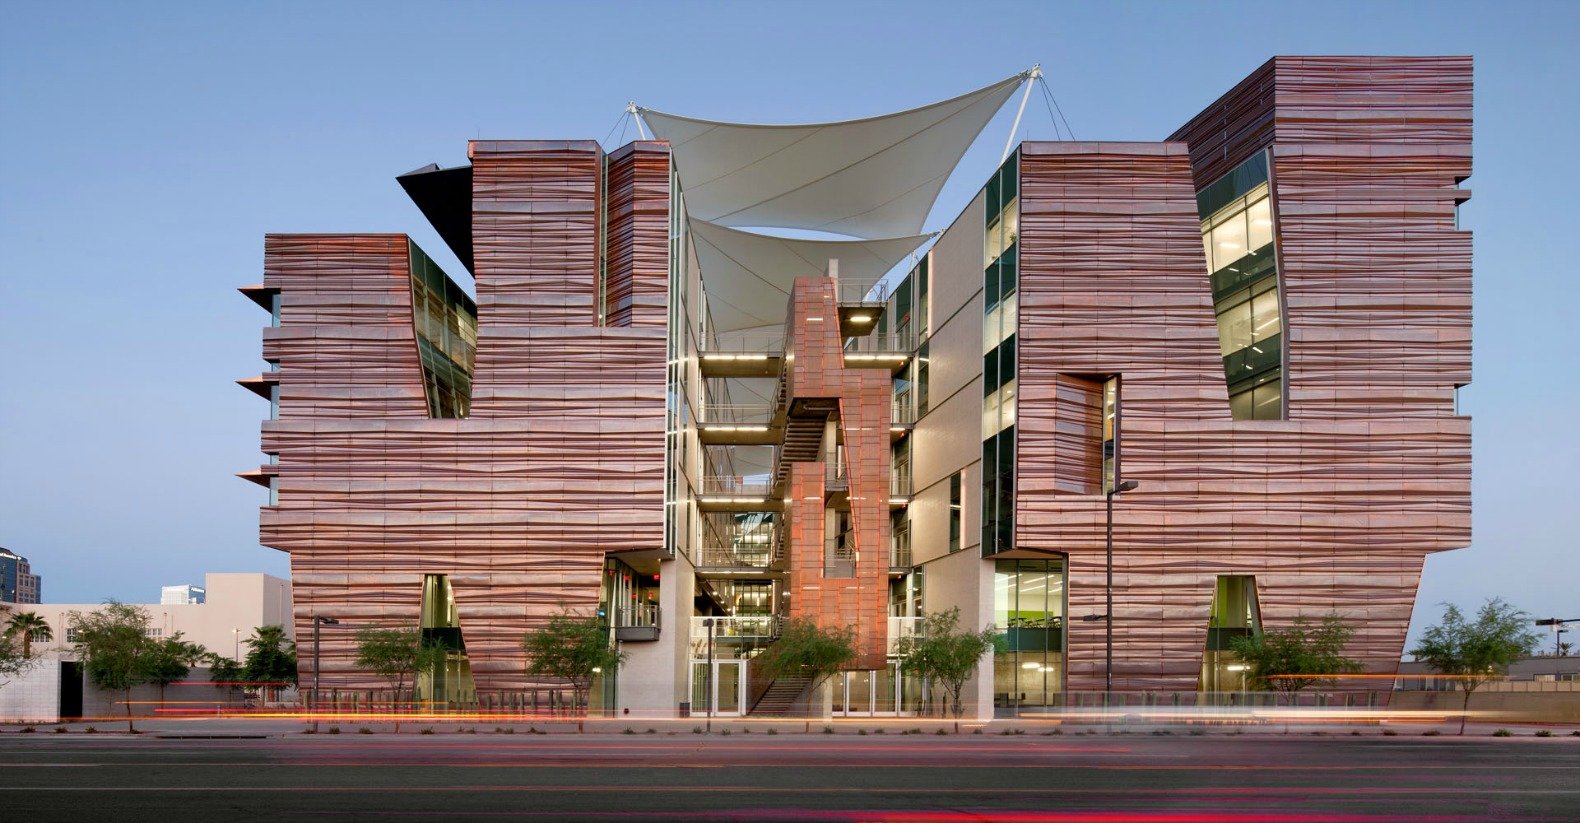 phoenix copper building architecture biomedical recycled research panels sciences center buildings clad architects canyon gorgeous inspired facades sustainable innovation cladding